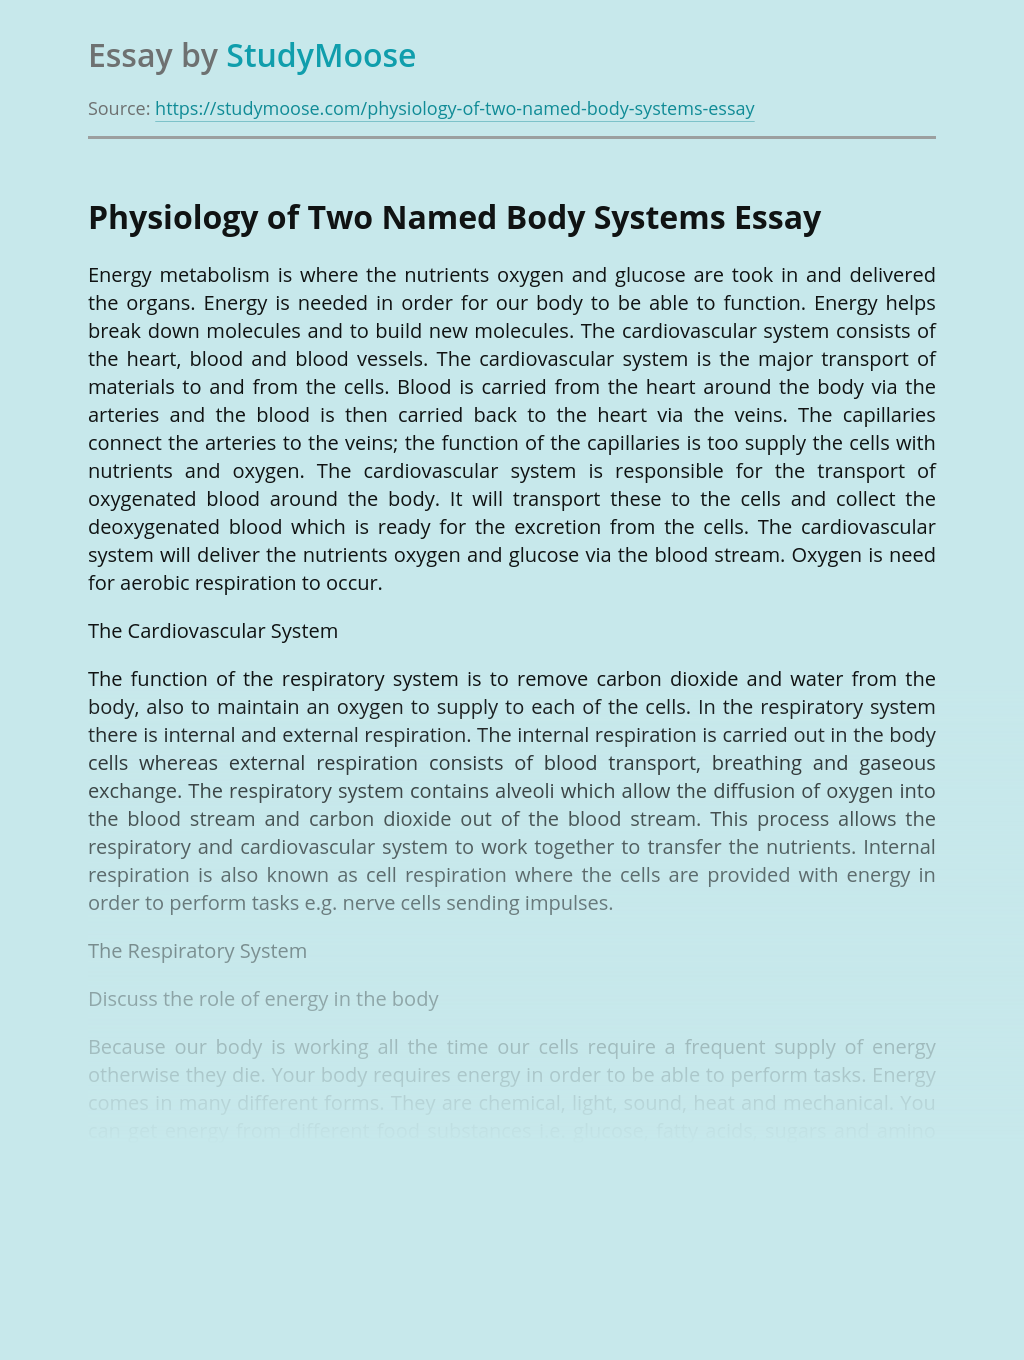 Physiology of Two Named Body Systems